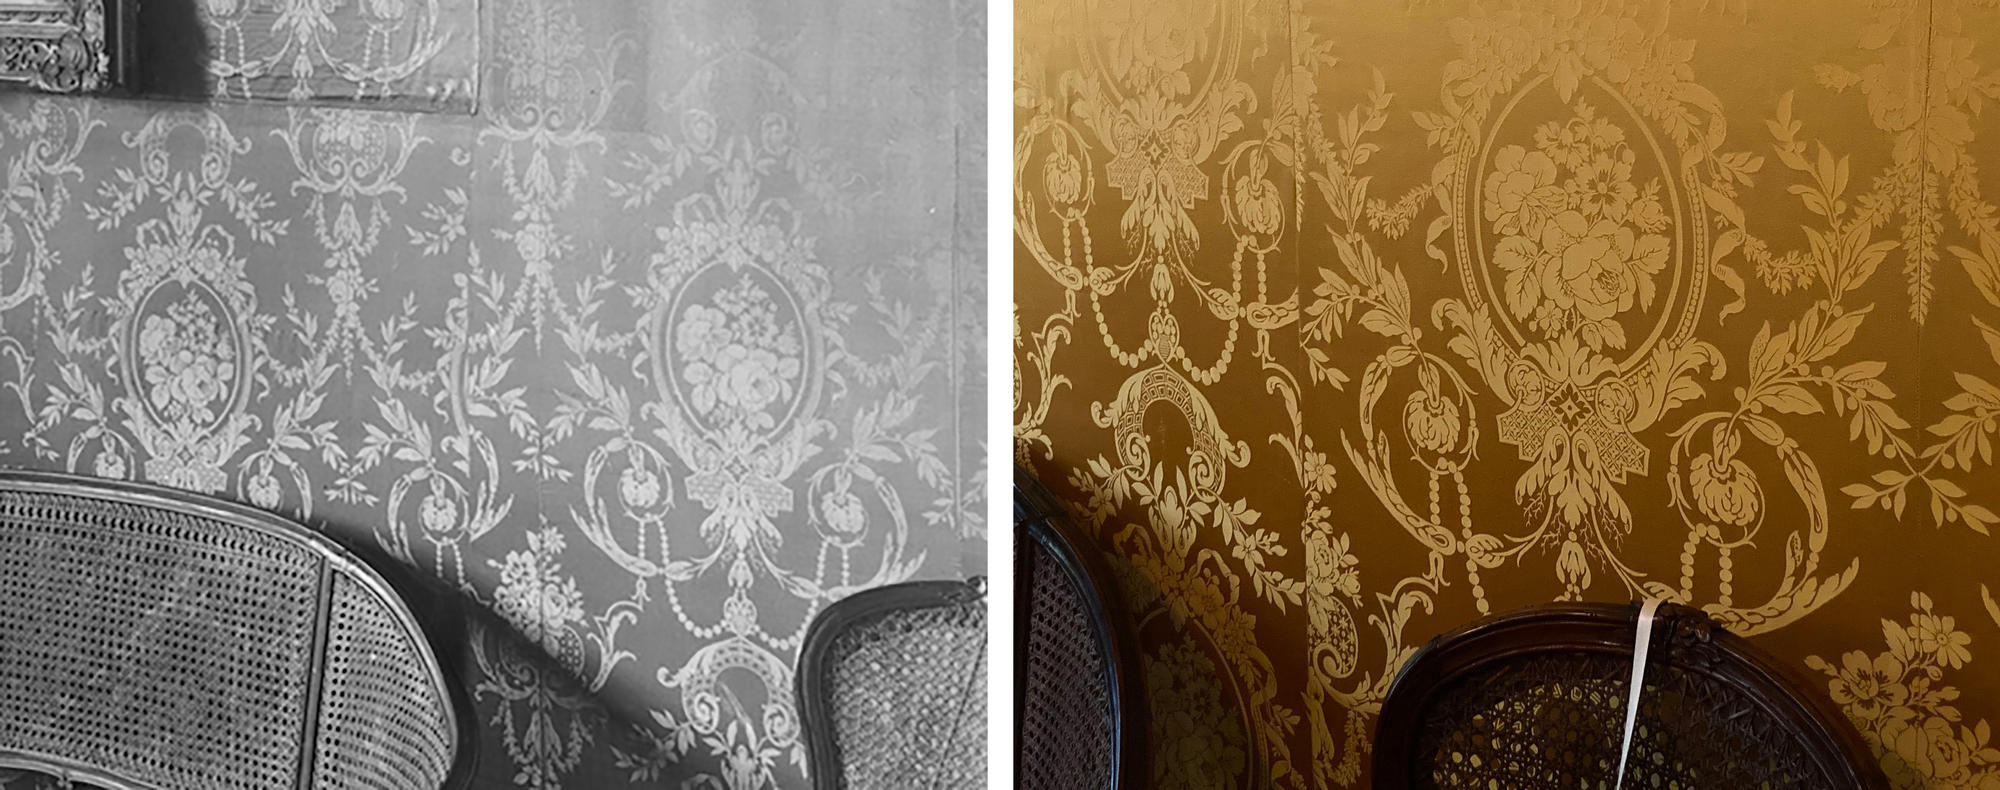 A black and white photo of the walls in the Yellow room on the left, with a yellow vibrant wall on the right.